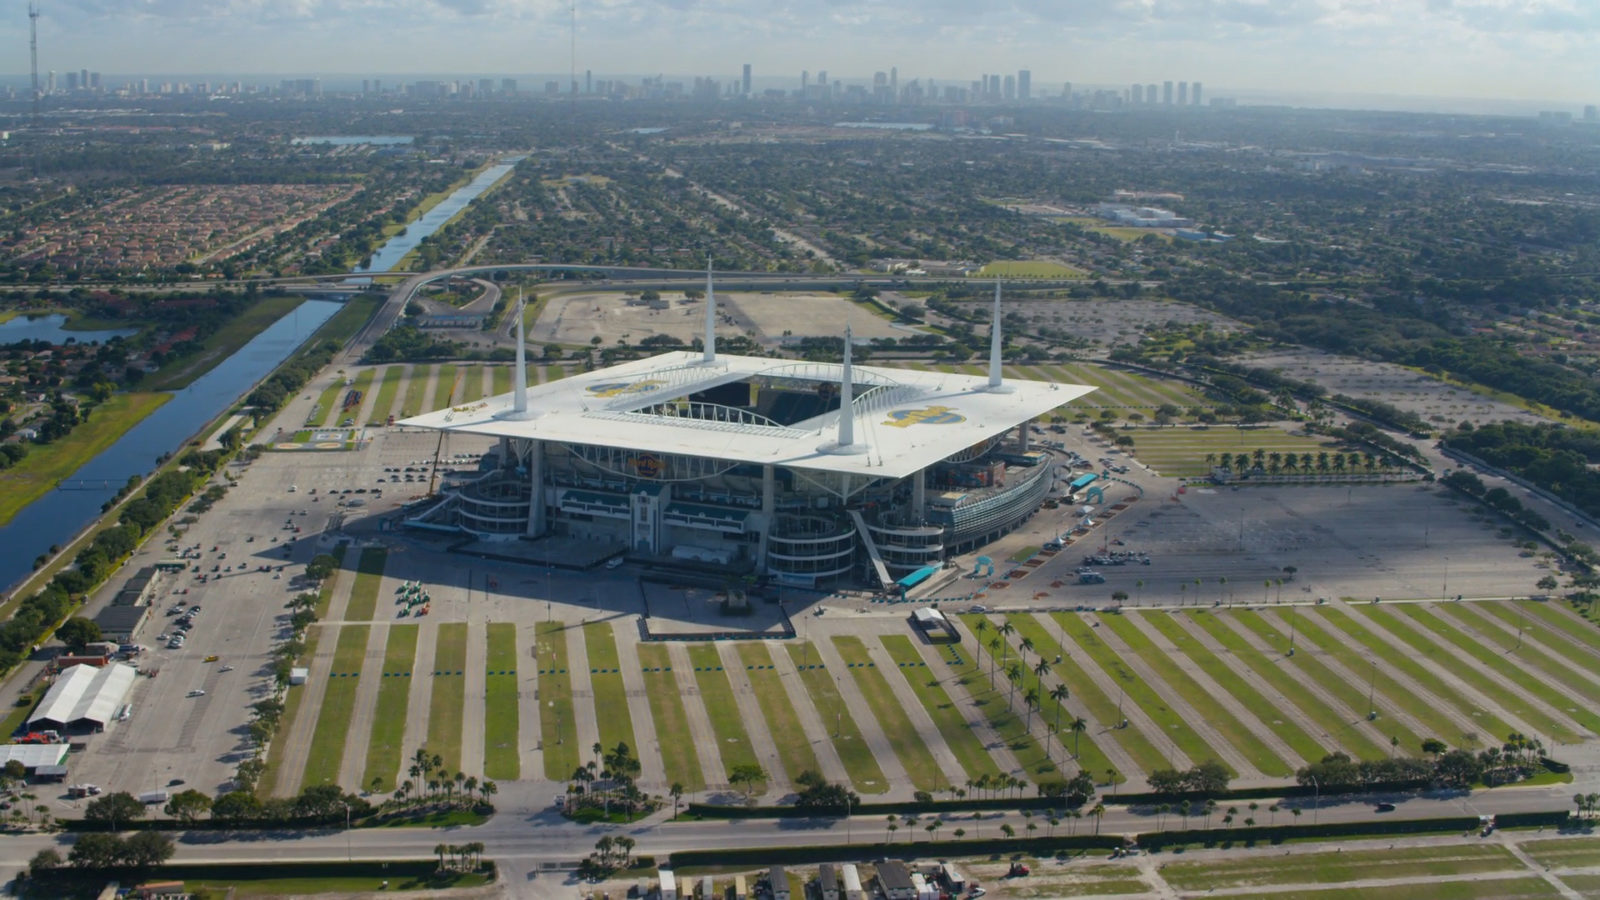 Miami Dolphins' Hard Rock Stadium has emerged as a location for a Miami Grand Prix